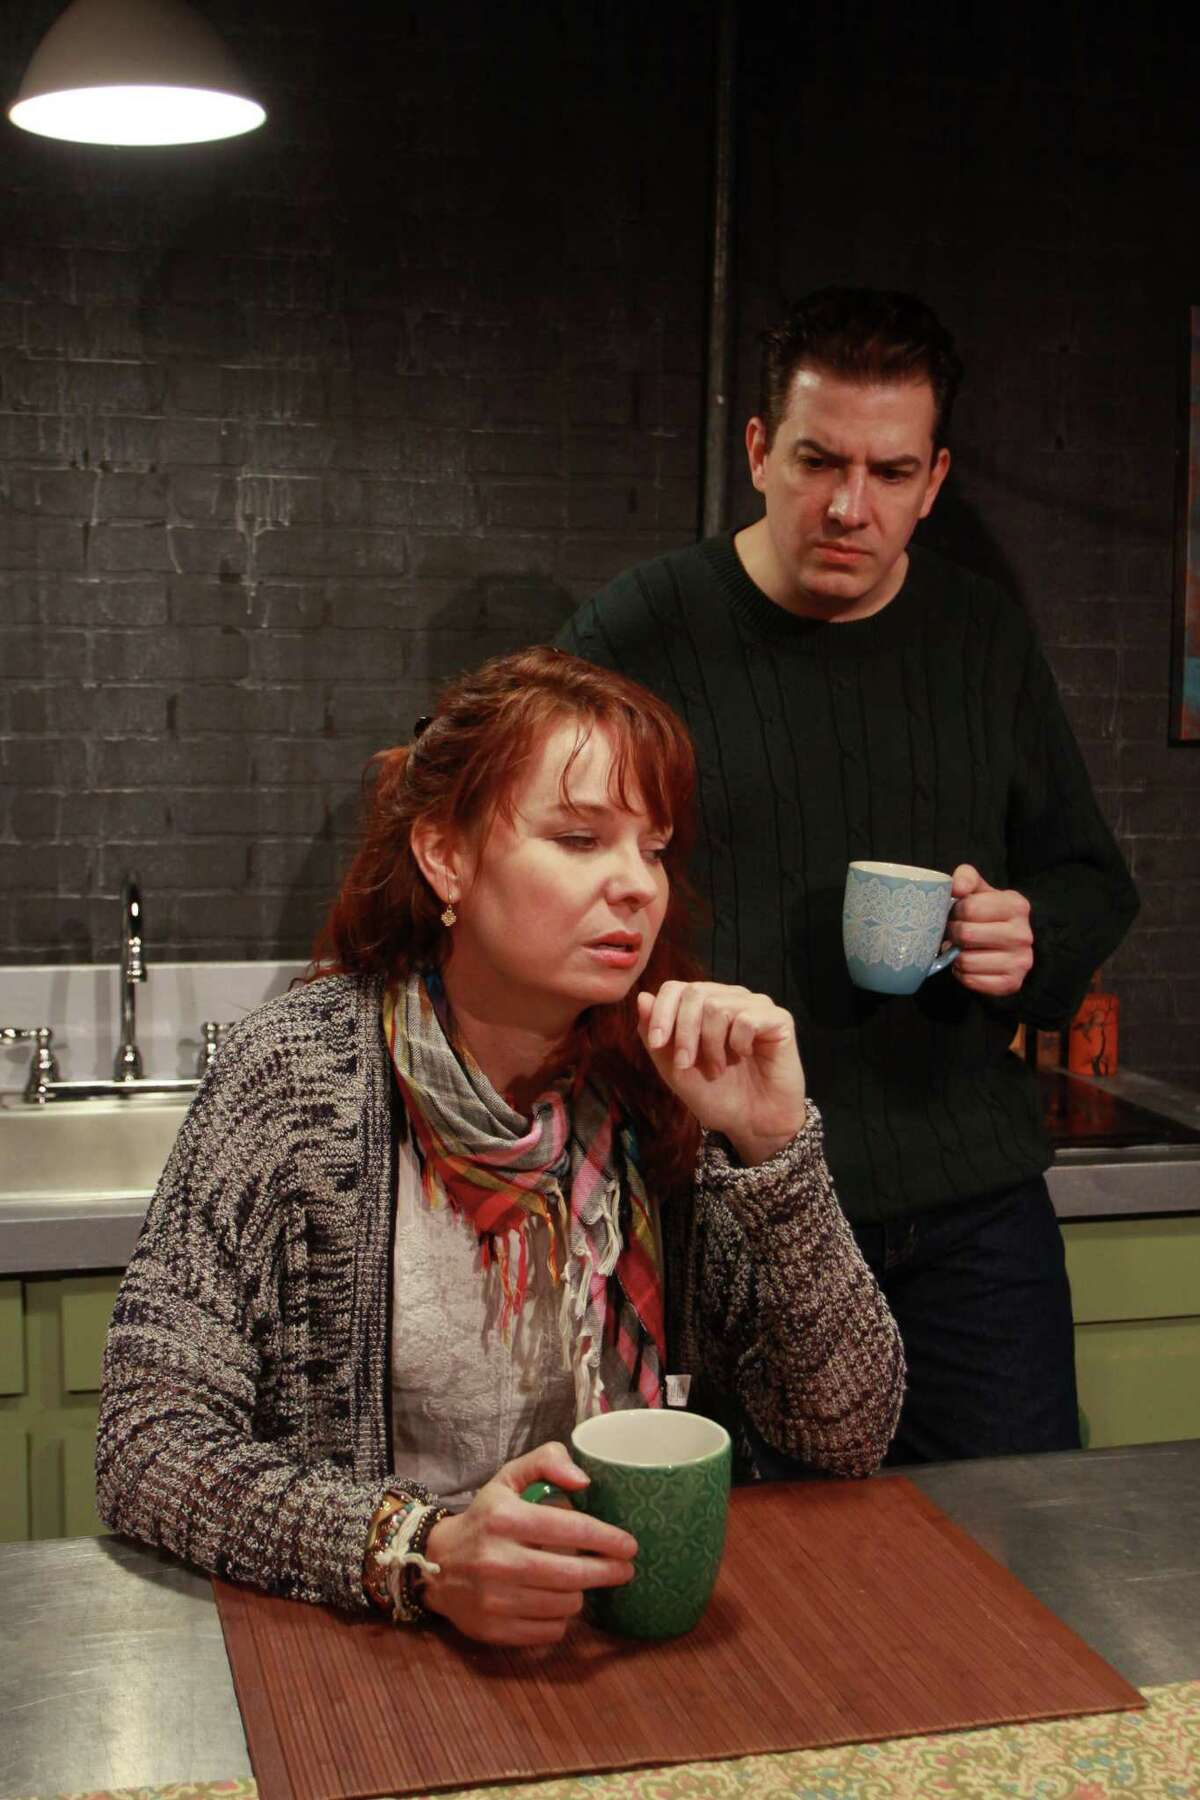 """Sarah (Sara Gaston) and James (Sean Patrick Judge) discover that they have differing views about covering war as journalists in Main Street Theater's Houston premiere of Donald Margulies' play """"Time Stands Still."""""""